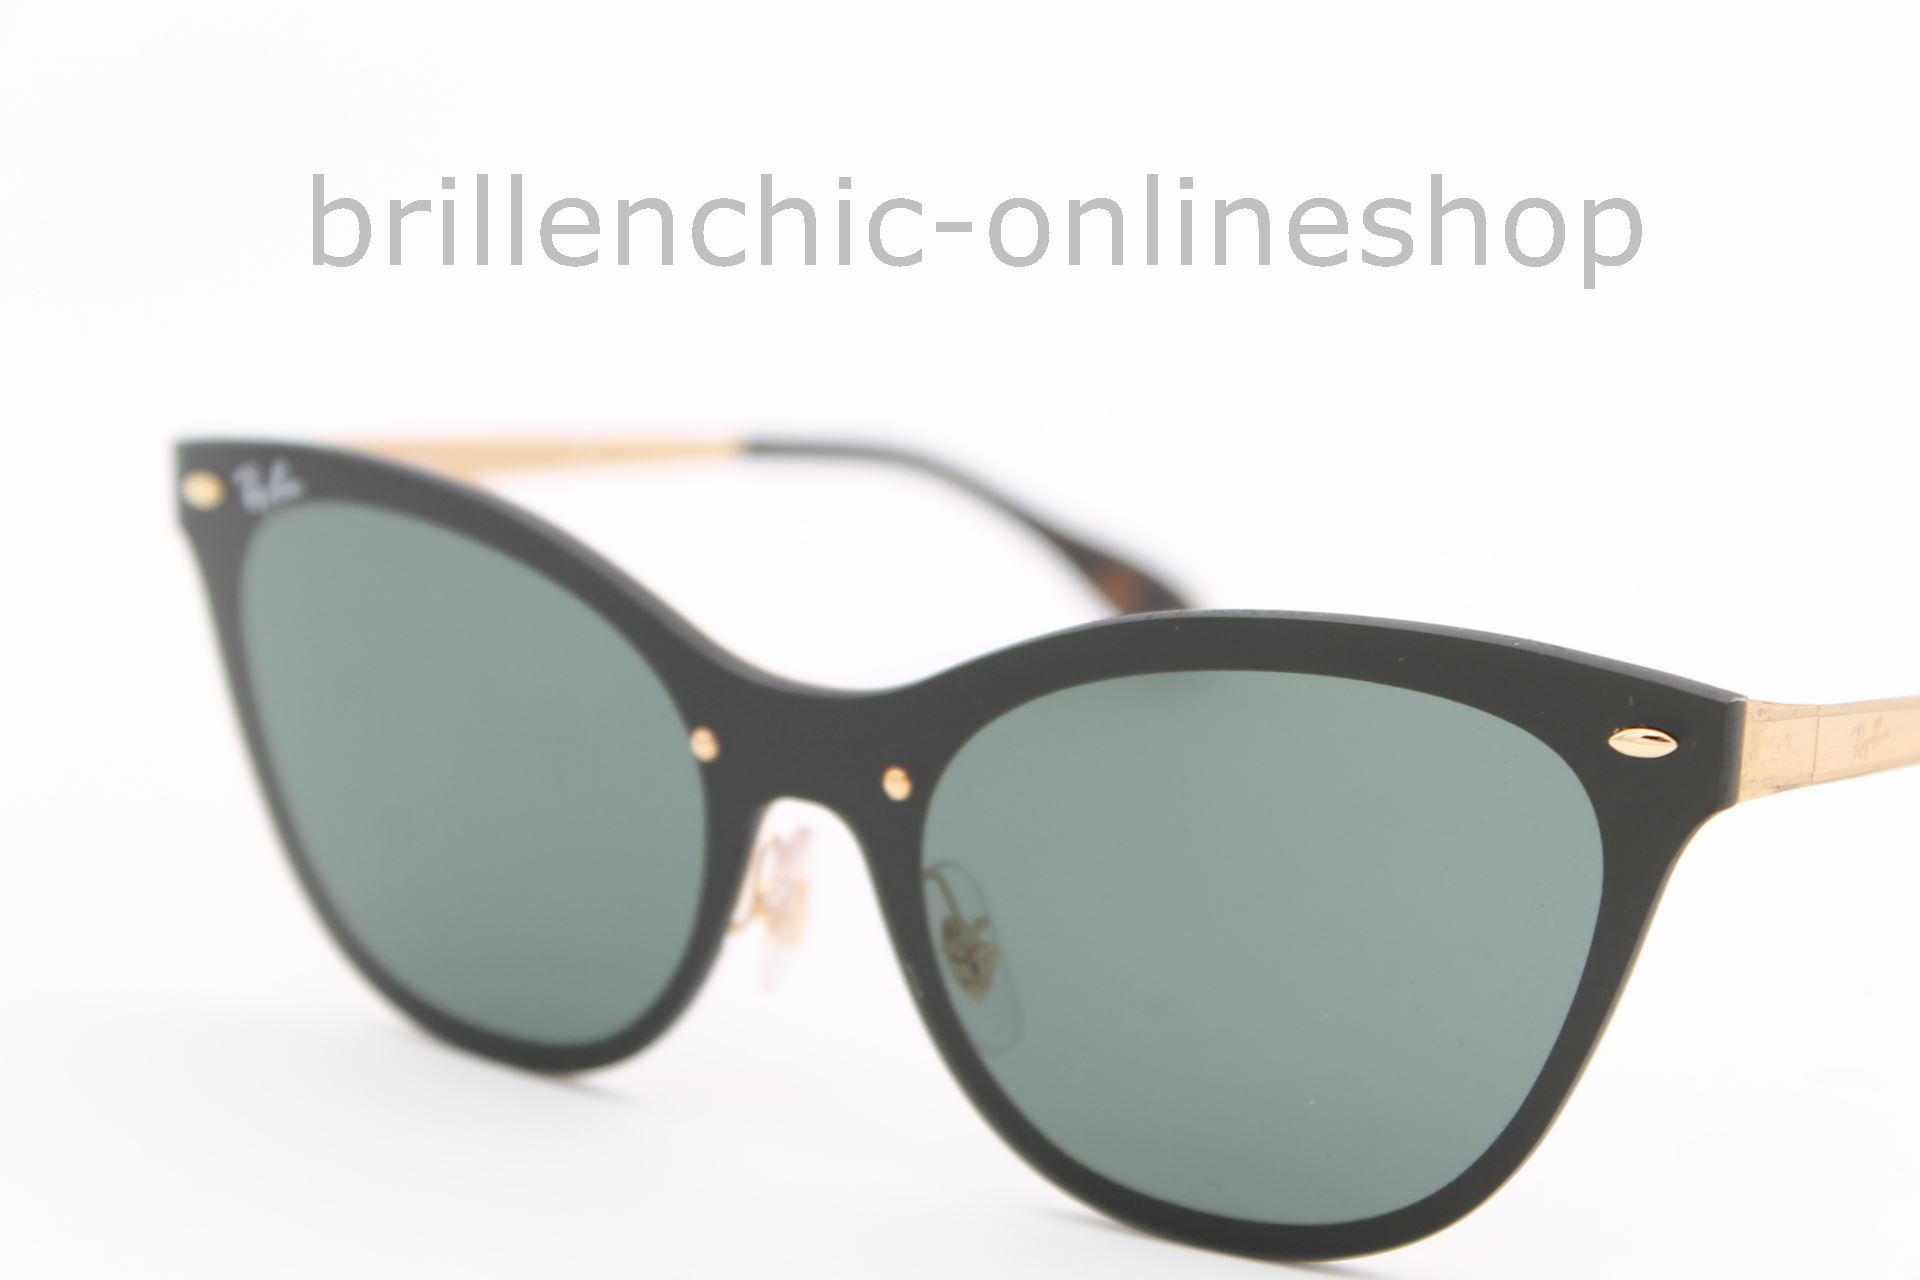 013ff0c6704 Brillenchic-onlineshop in Berlin - Ray Ban BLAZE CAT EYE RB 3580N ...